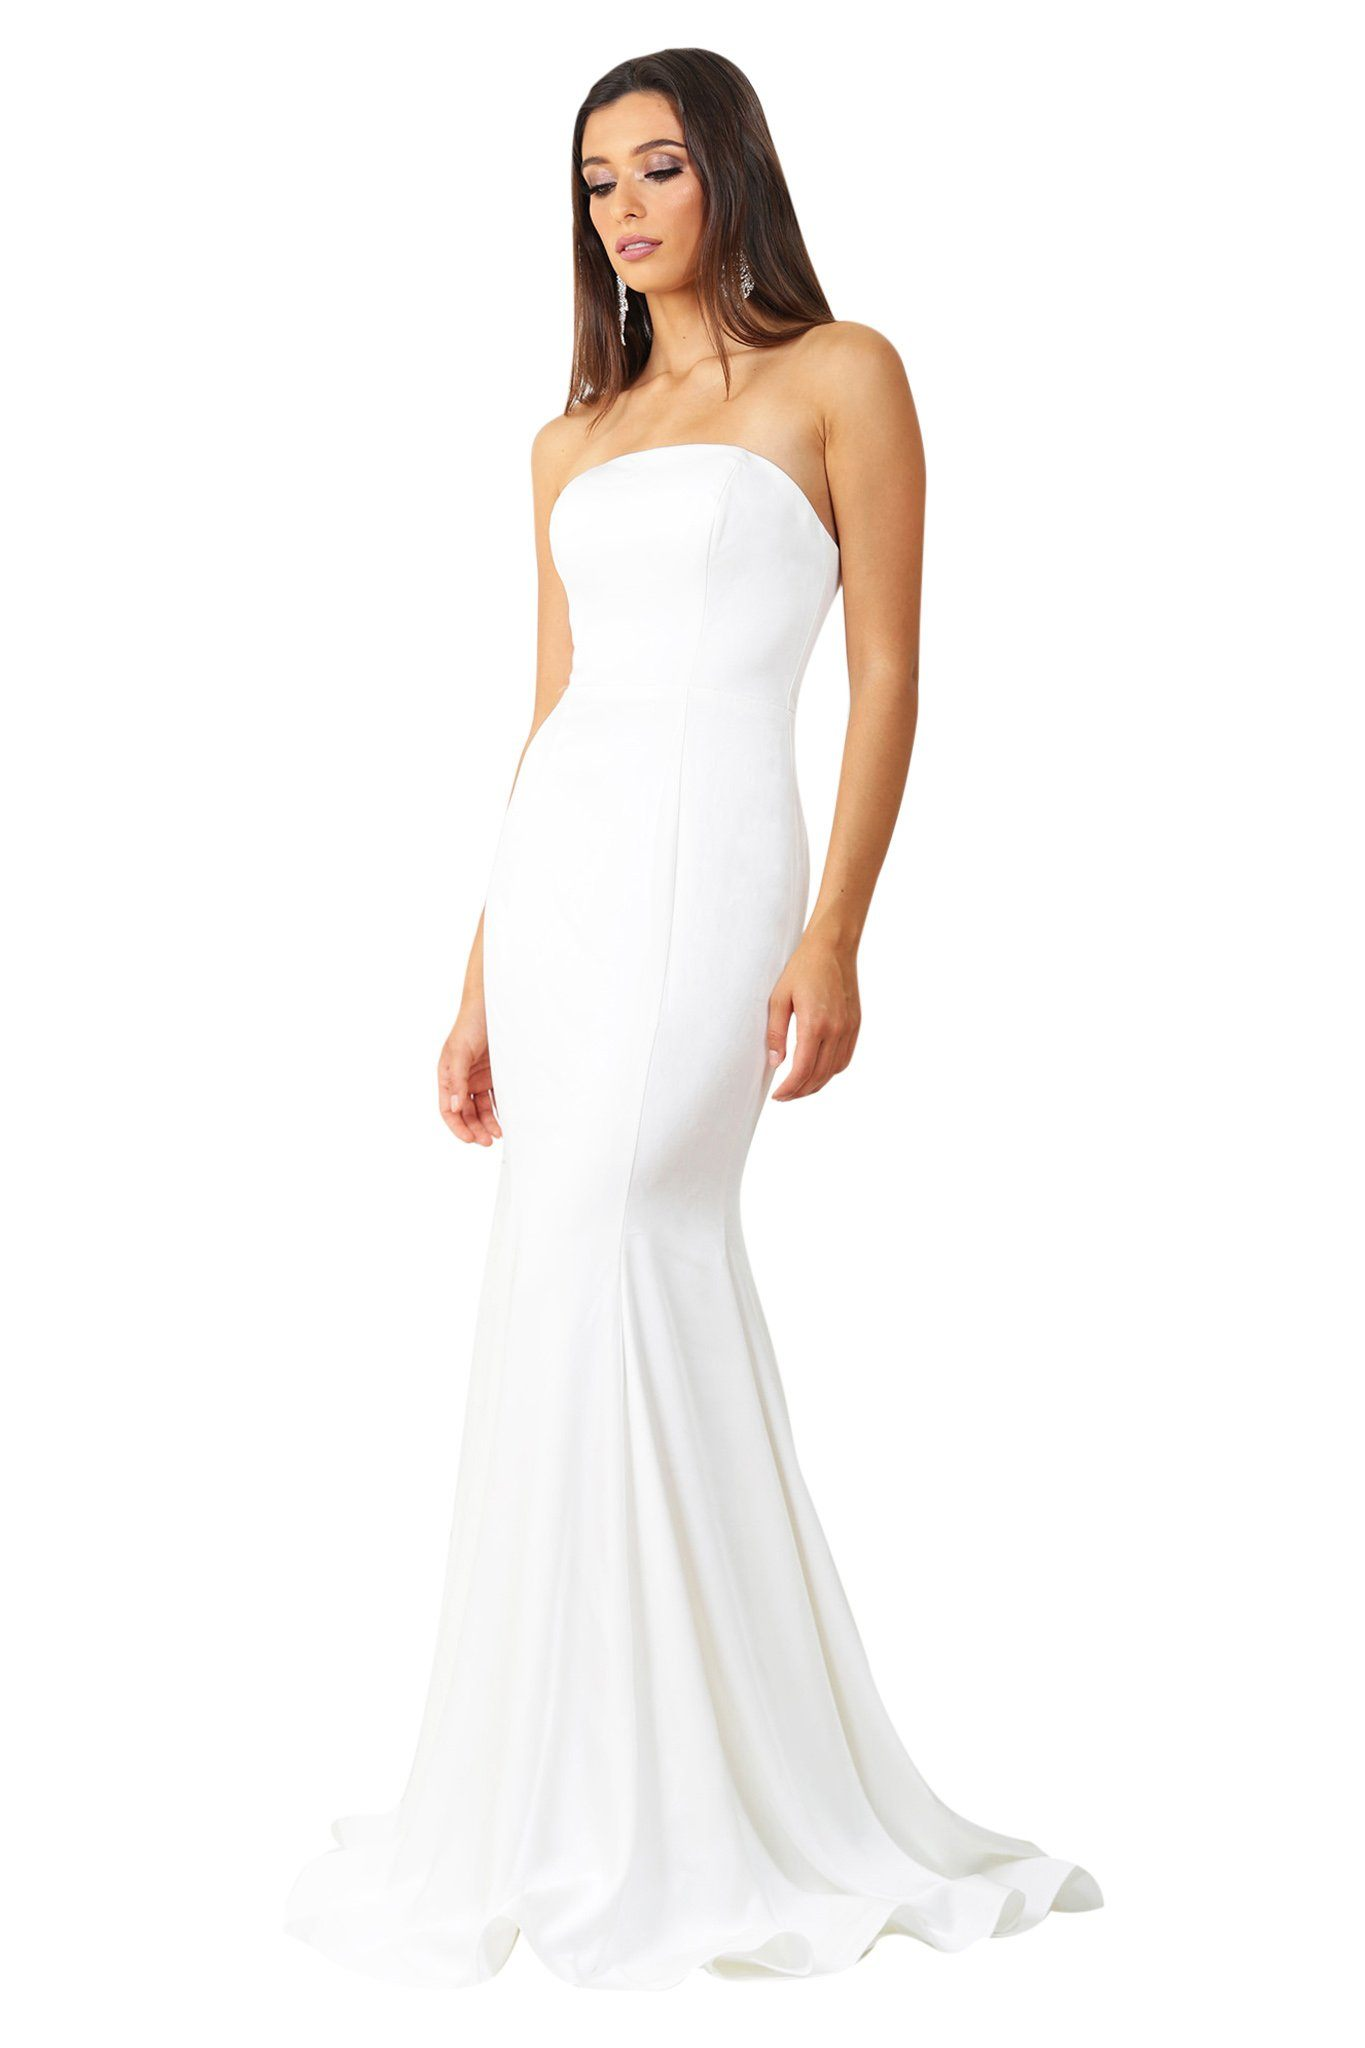 White strapless straight neckline boned bodice fitted evening gown with floor sweeping train